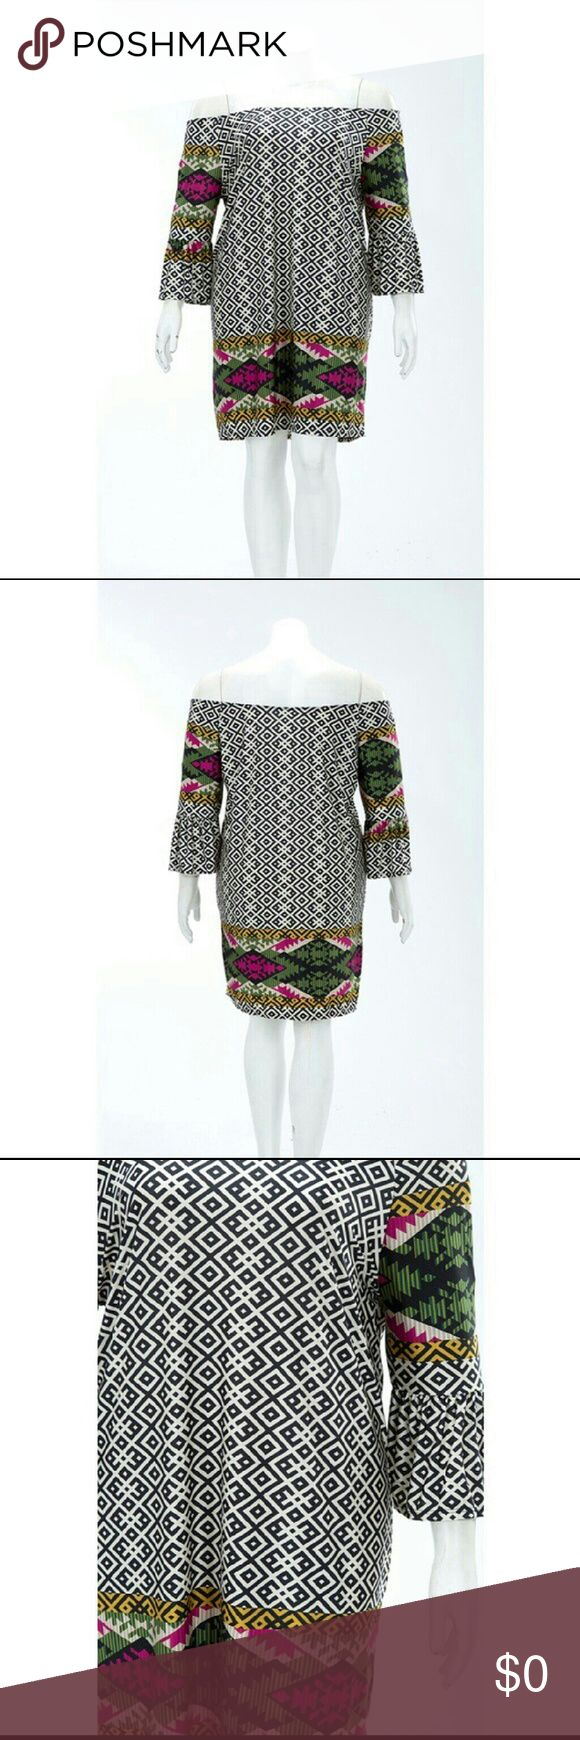 Aztec Print Off-Shoulder Plus Size  Dress HP?? Host Pick 4/4?? Three available! Now adding plus sizes to my boutique!  Soft mixed Aztec print  off the shoulders minidress with bell sleeves.  Lovely piece! Made in the U.S.A.  Polyester/spandex blend. Available in 1X, 2X, and 3X. (Only 1 of each). Dresses Mini